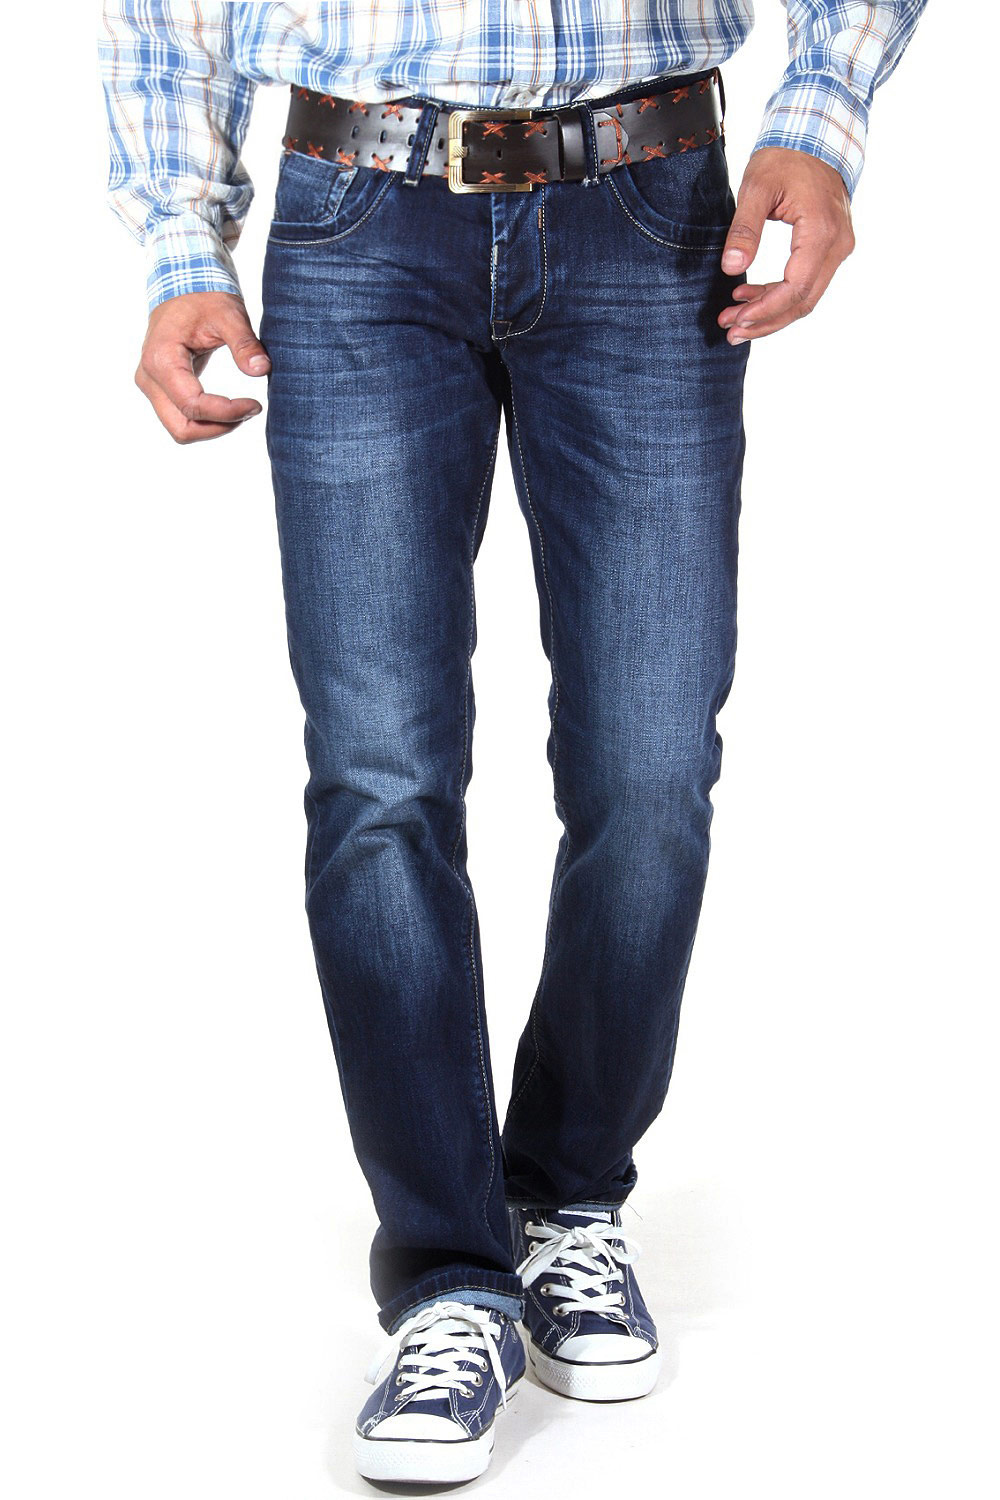 BRIGHT CLASSIC hipjeans regular fit at oboy.com